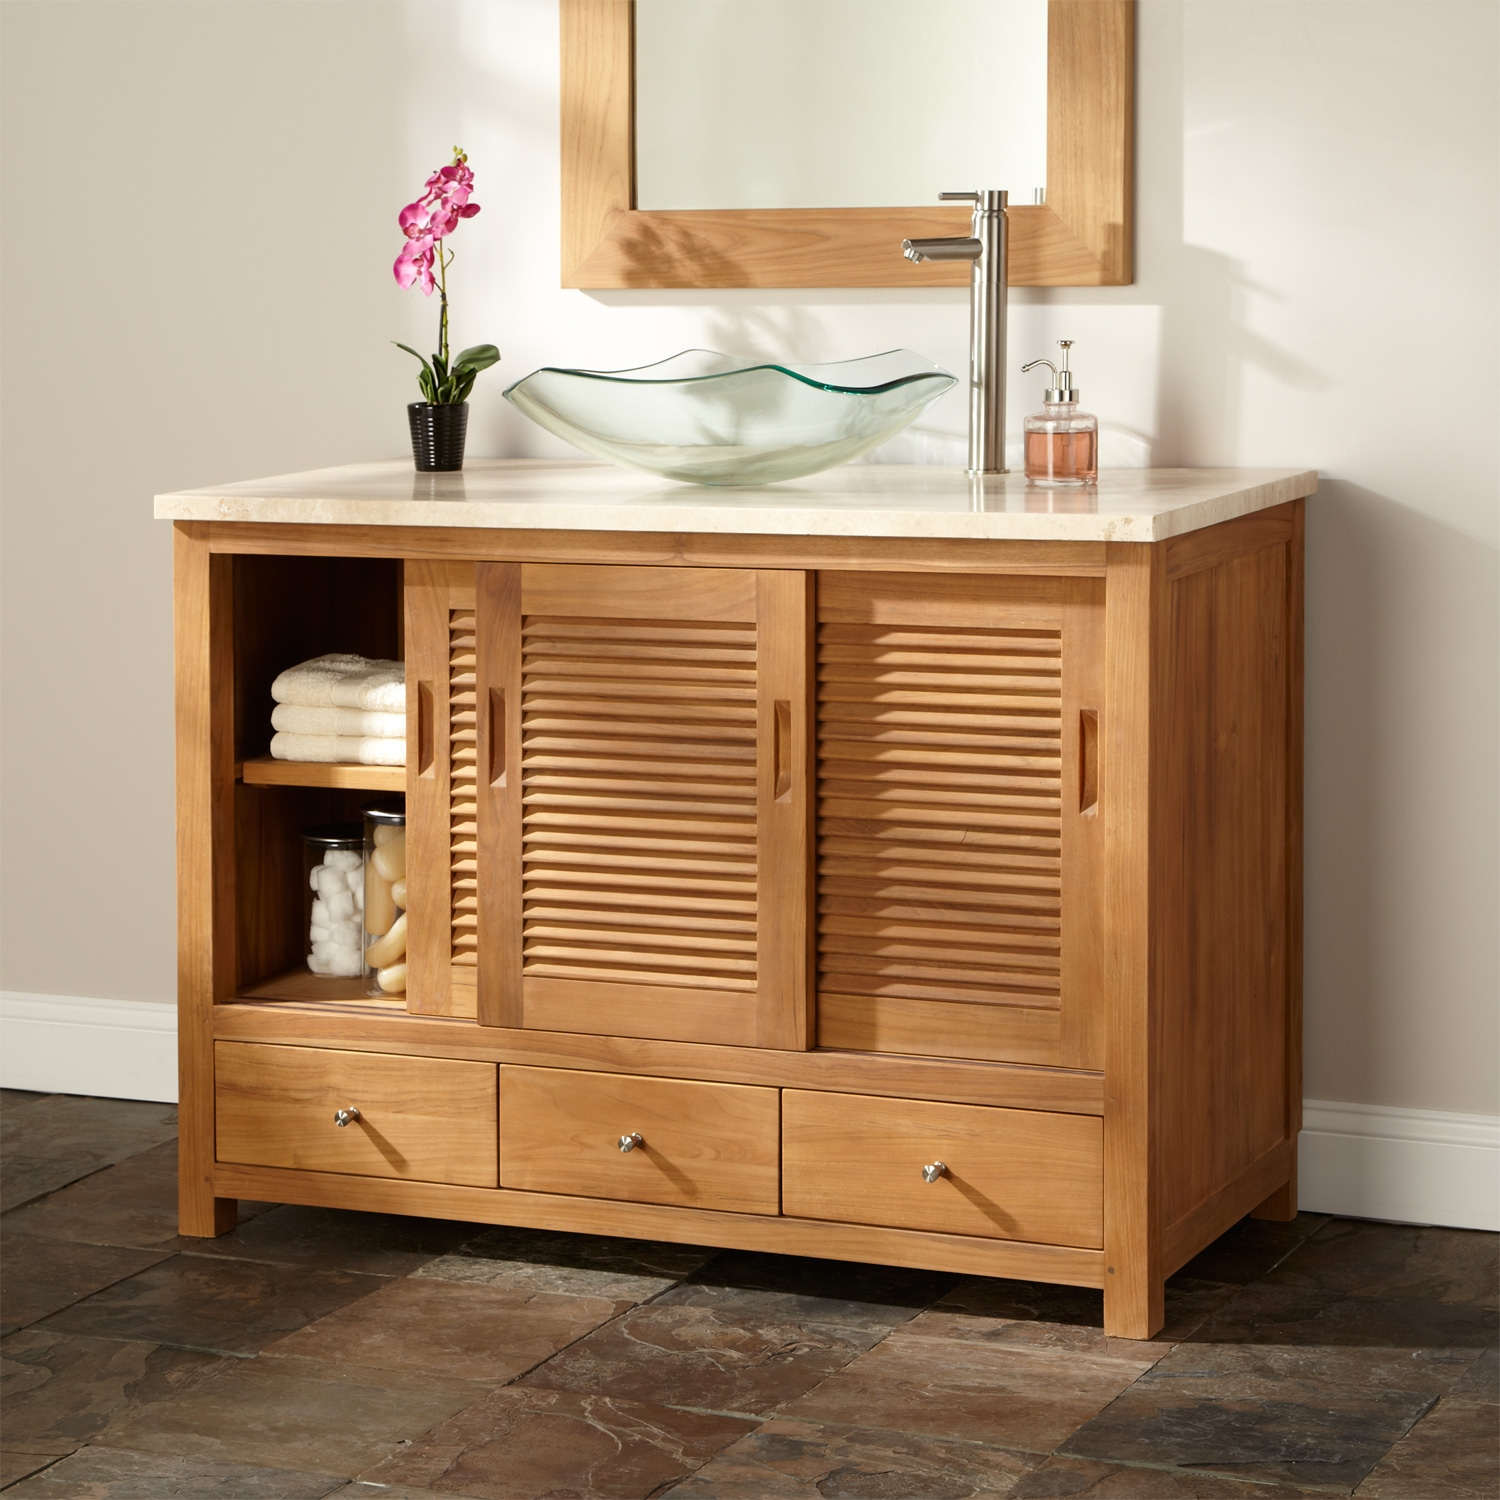 Wood Bathroom Cabinet Doors